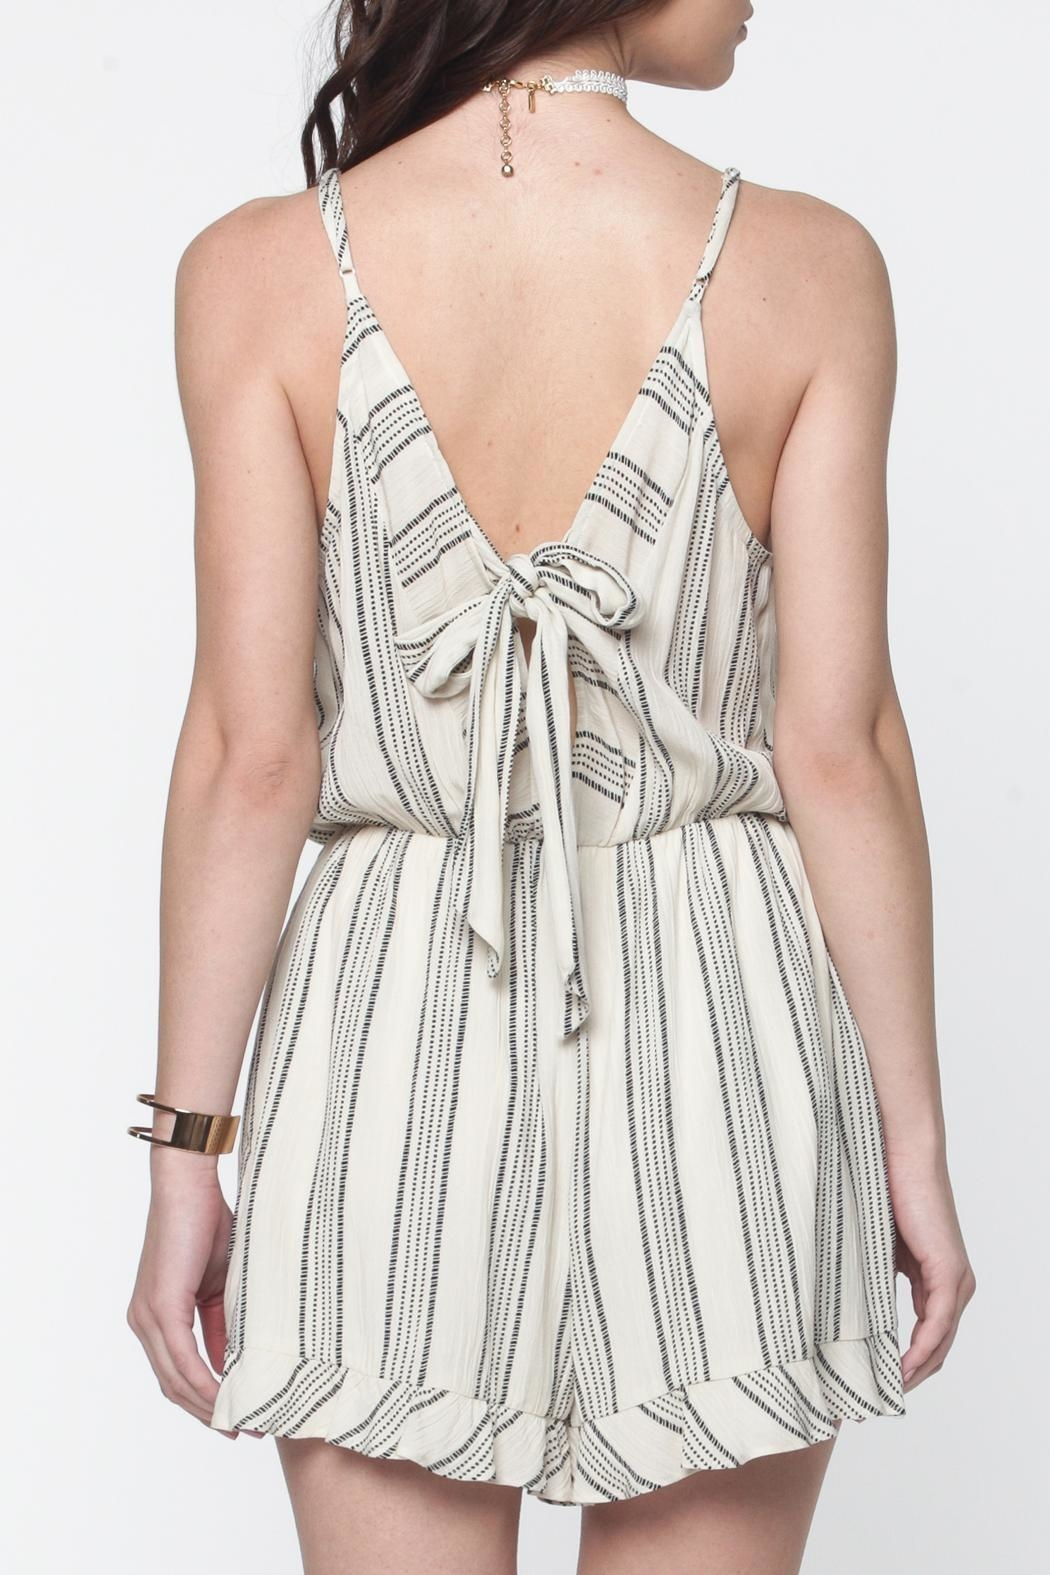 Everly Striped Bow-Tie-Back Romper - Front Full Image